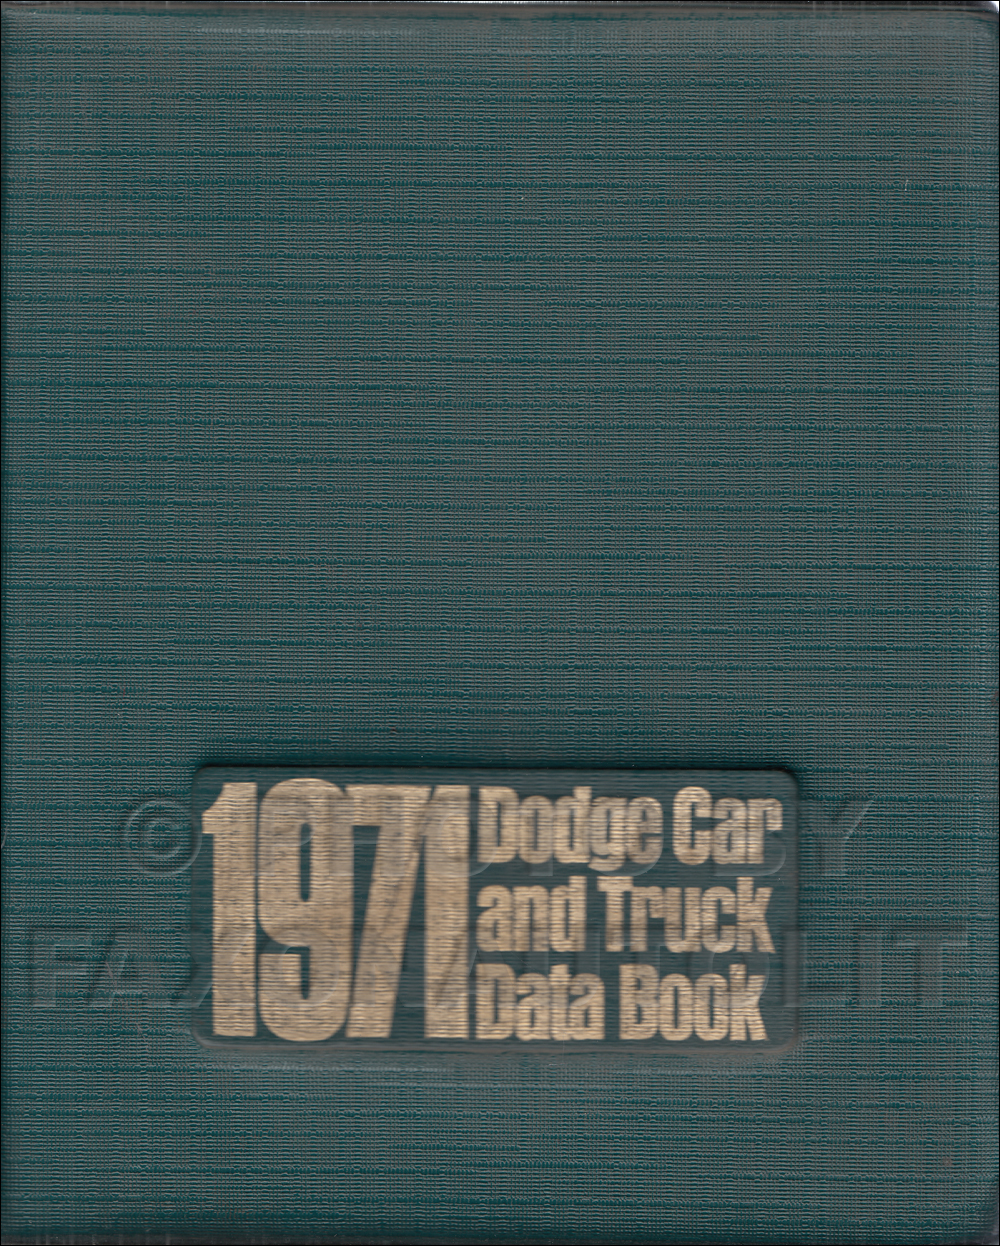 1971 Dodge Data Book Original